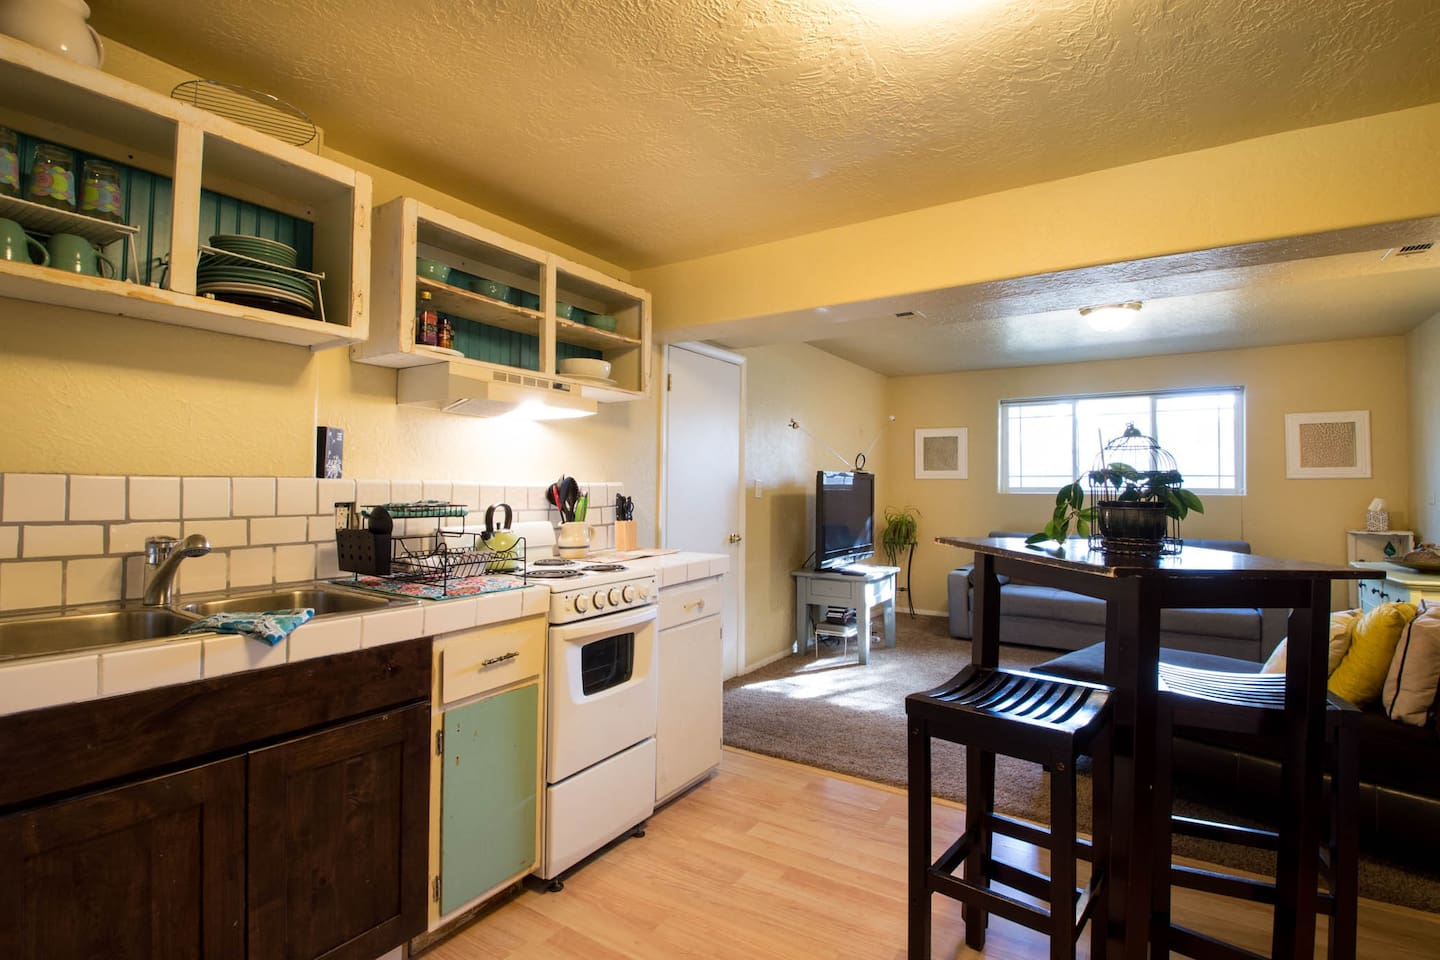 NEW PICS! My FrankinKitchen!! I salvaged 95% of the materials that went into building this kitchen.